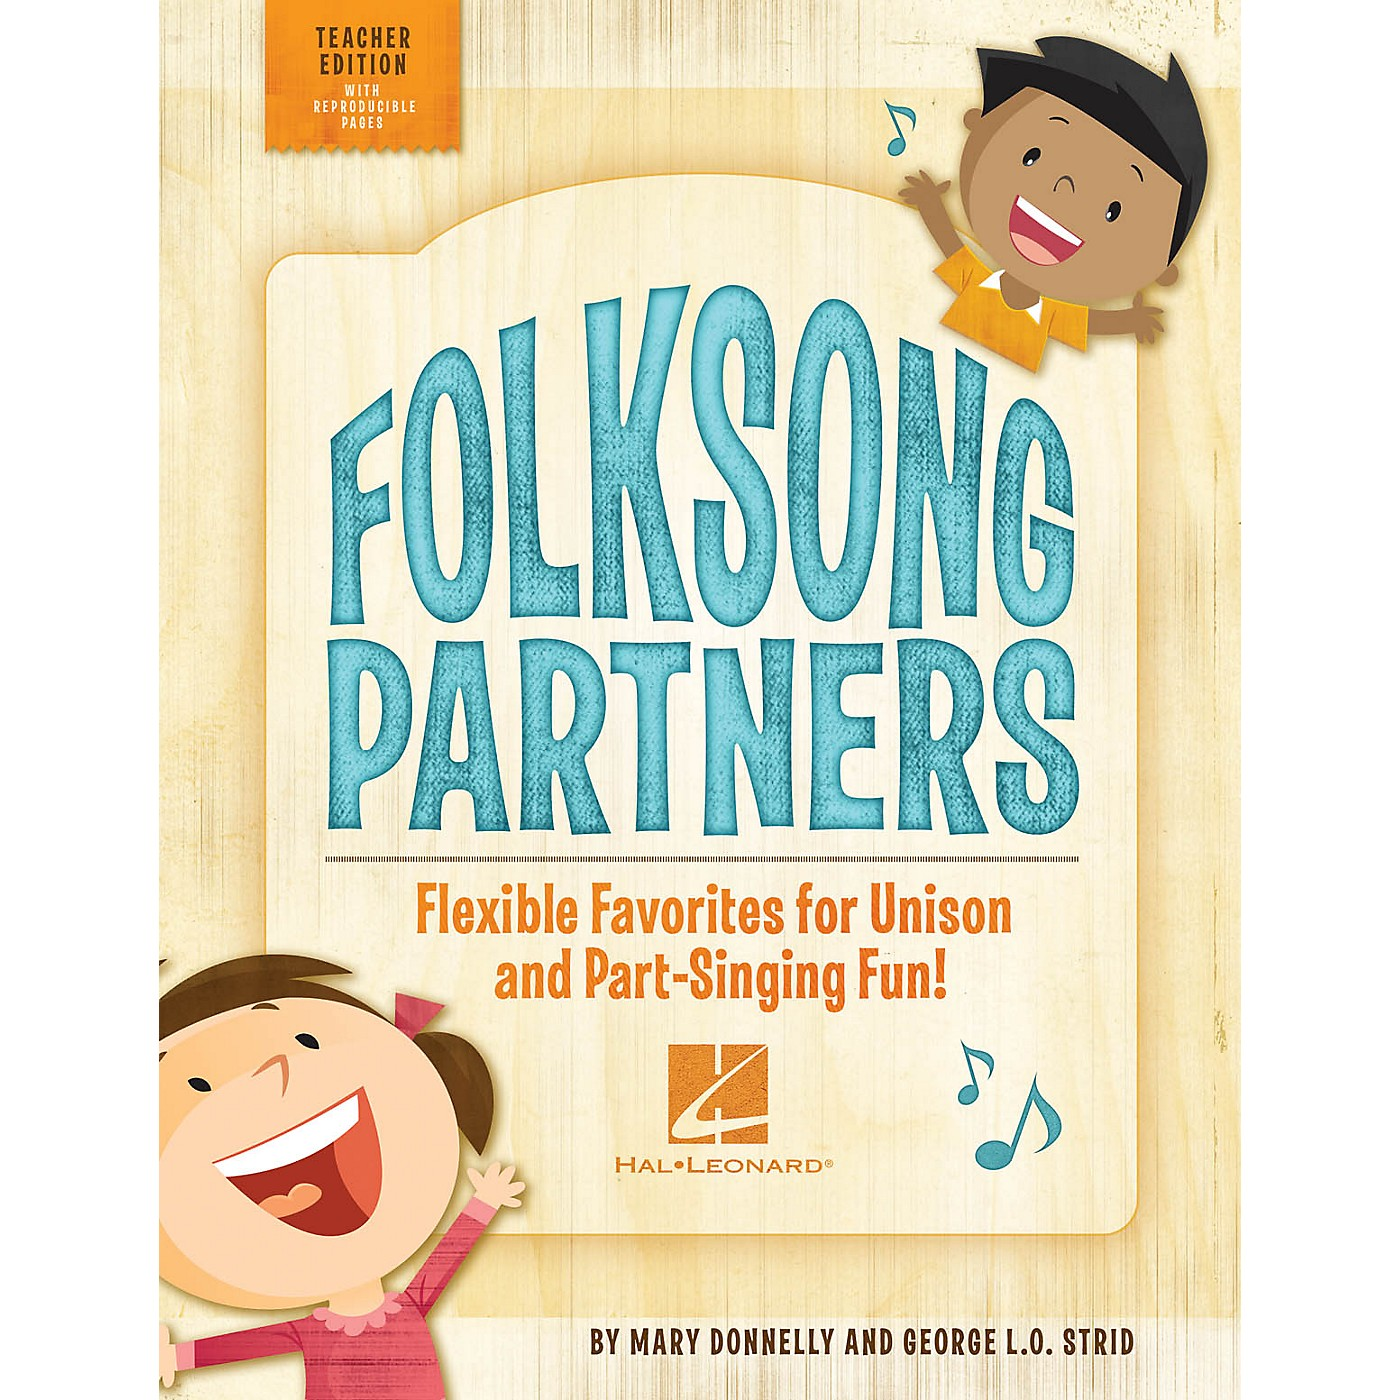 Hal Leonard Folksong Partners (Flexible Favorites for Unison and Part-Singing Fun!) TEACHER ED by George L.O. Strid thumbnail